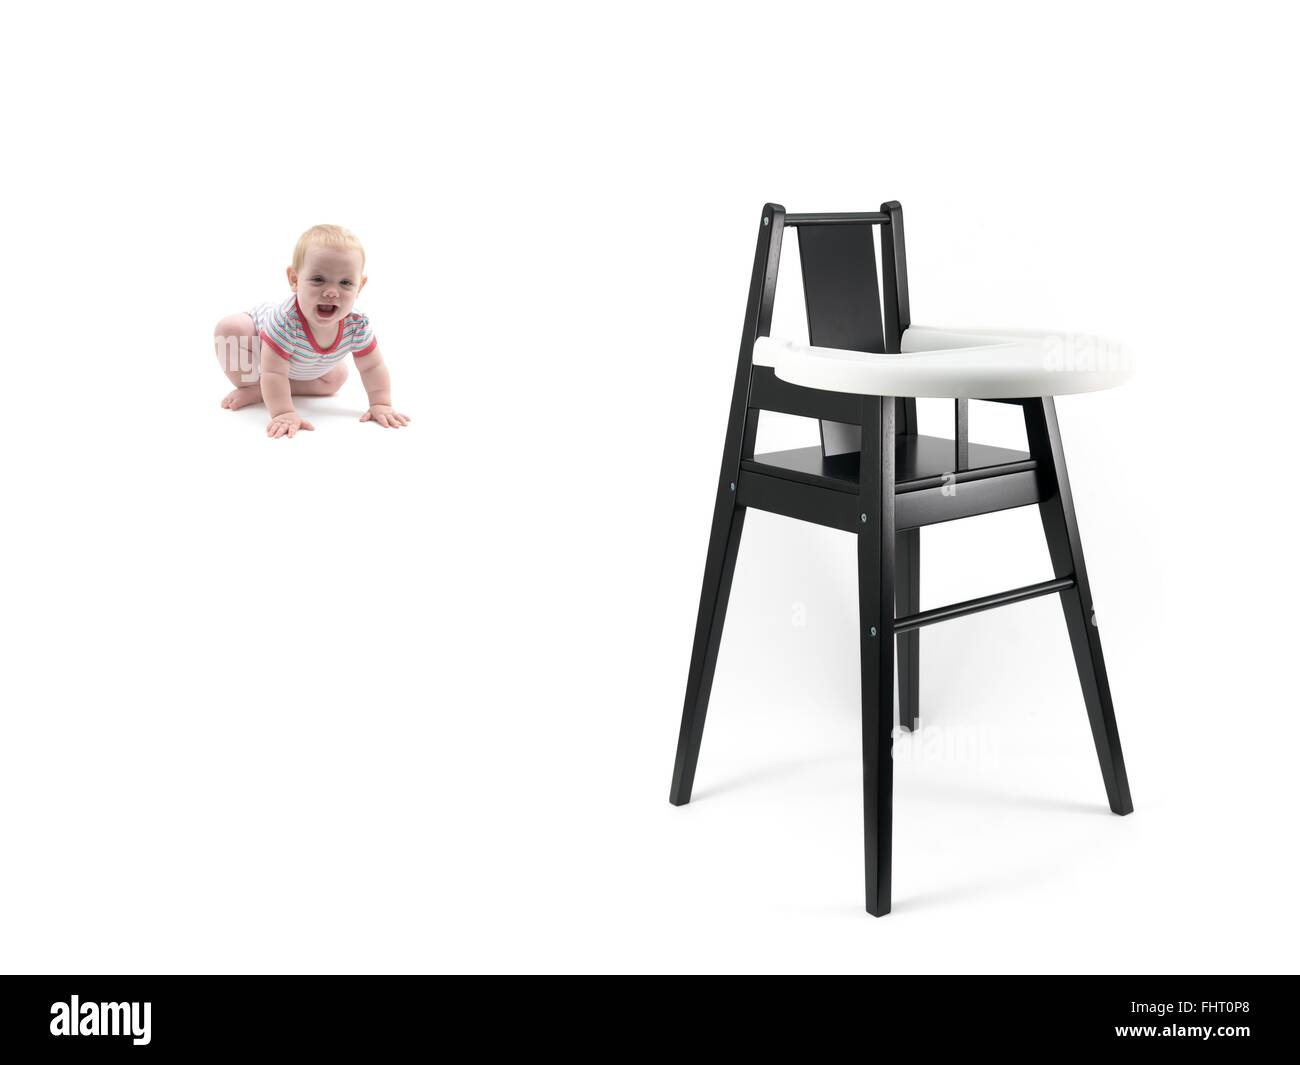 high chairs for small babies louis dining a baby girl and chair stock photo 97028464 alamy